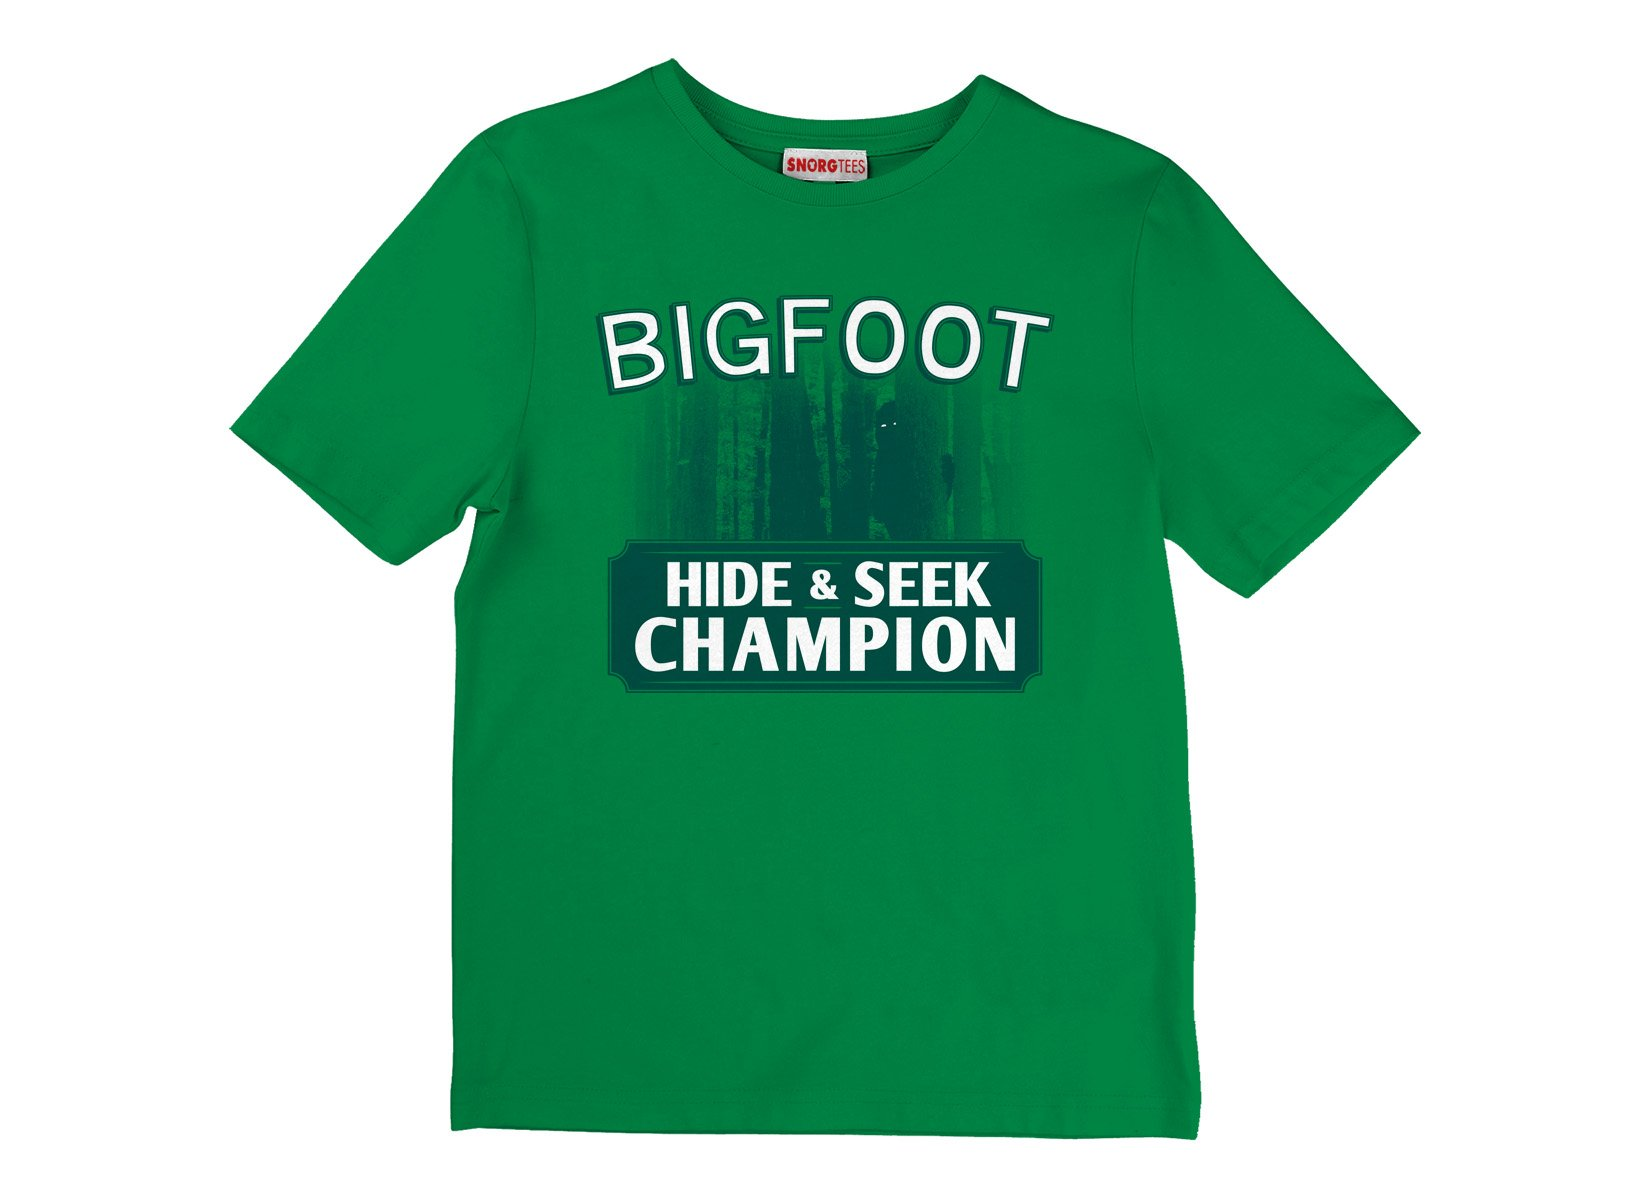 Bigfoot Hide And Seek Champion on Kids T-Shirt